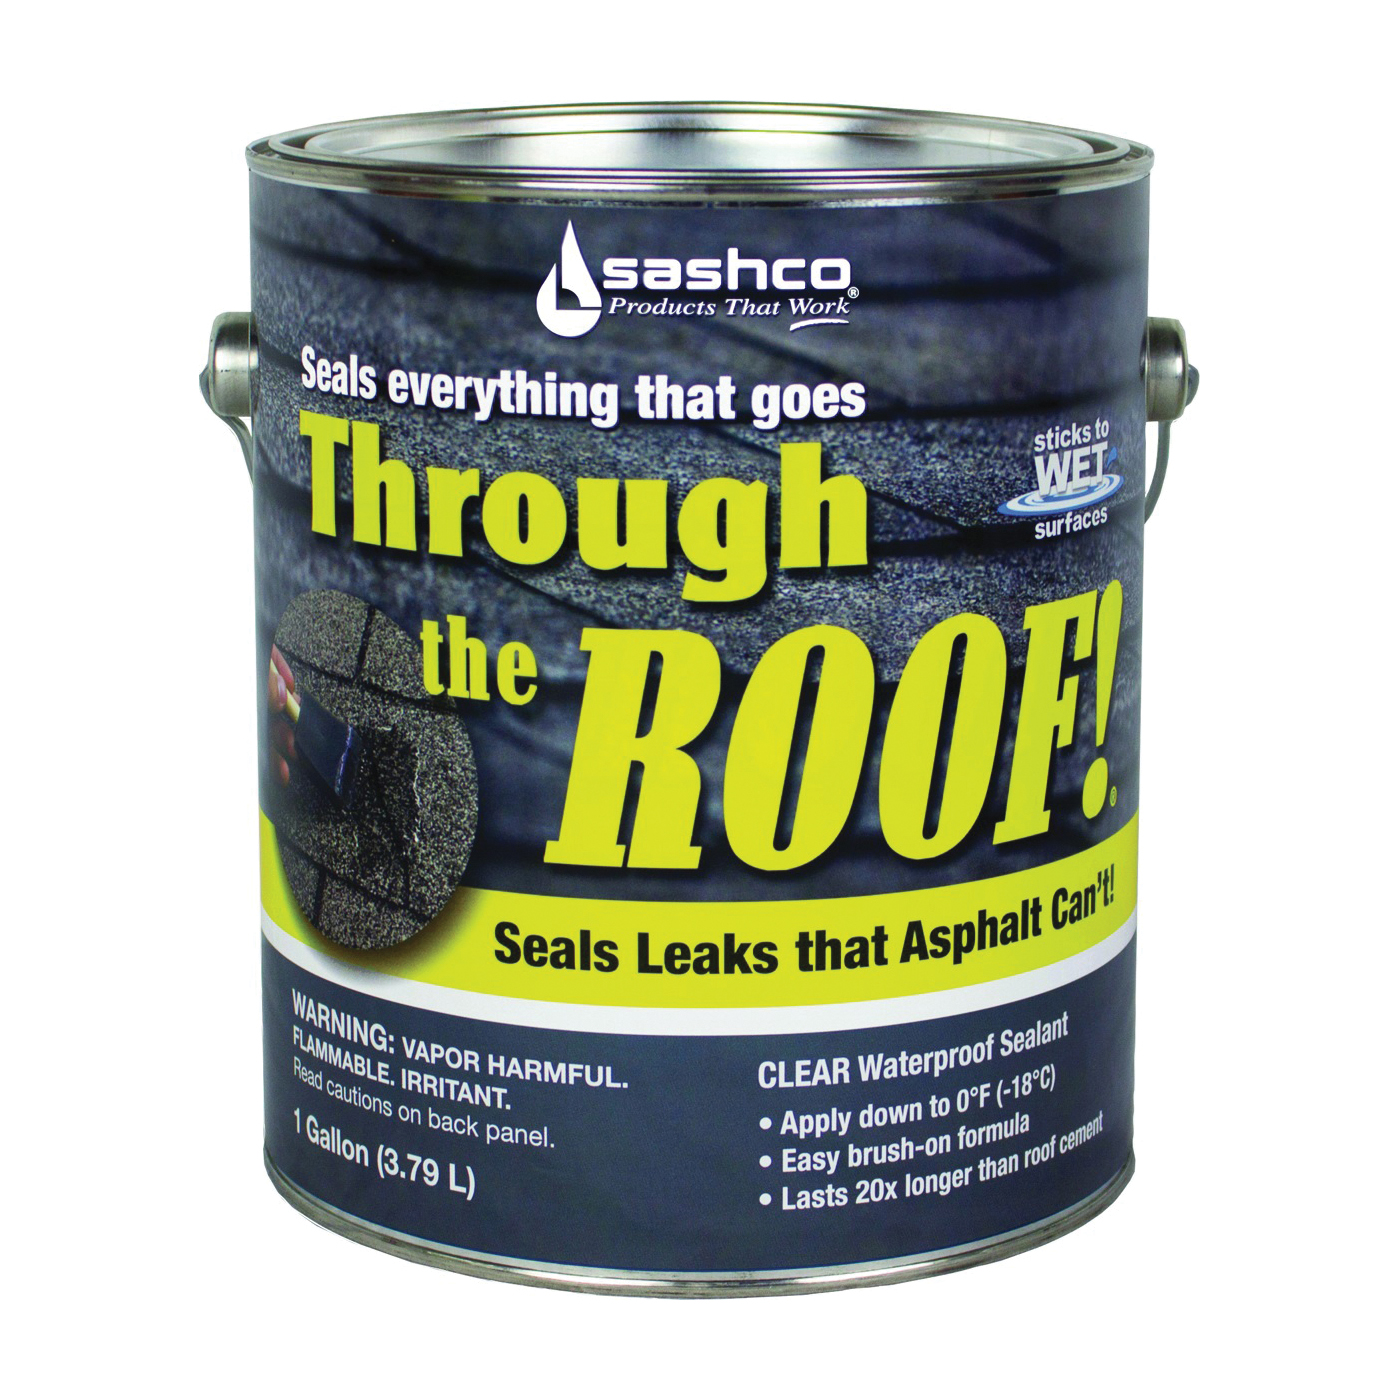 Picture of Through The Roof! 14024 Cement and Patching Sealant, Clear, Liquid, 1 gal Package, Container